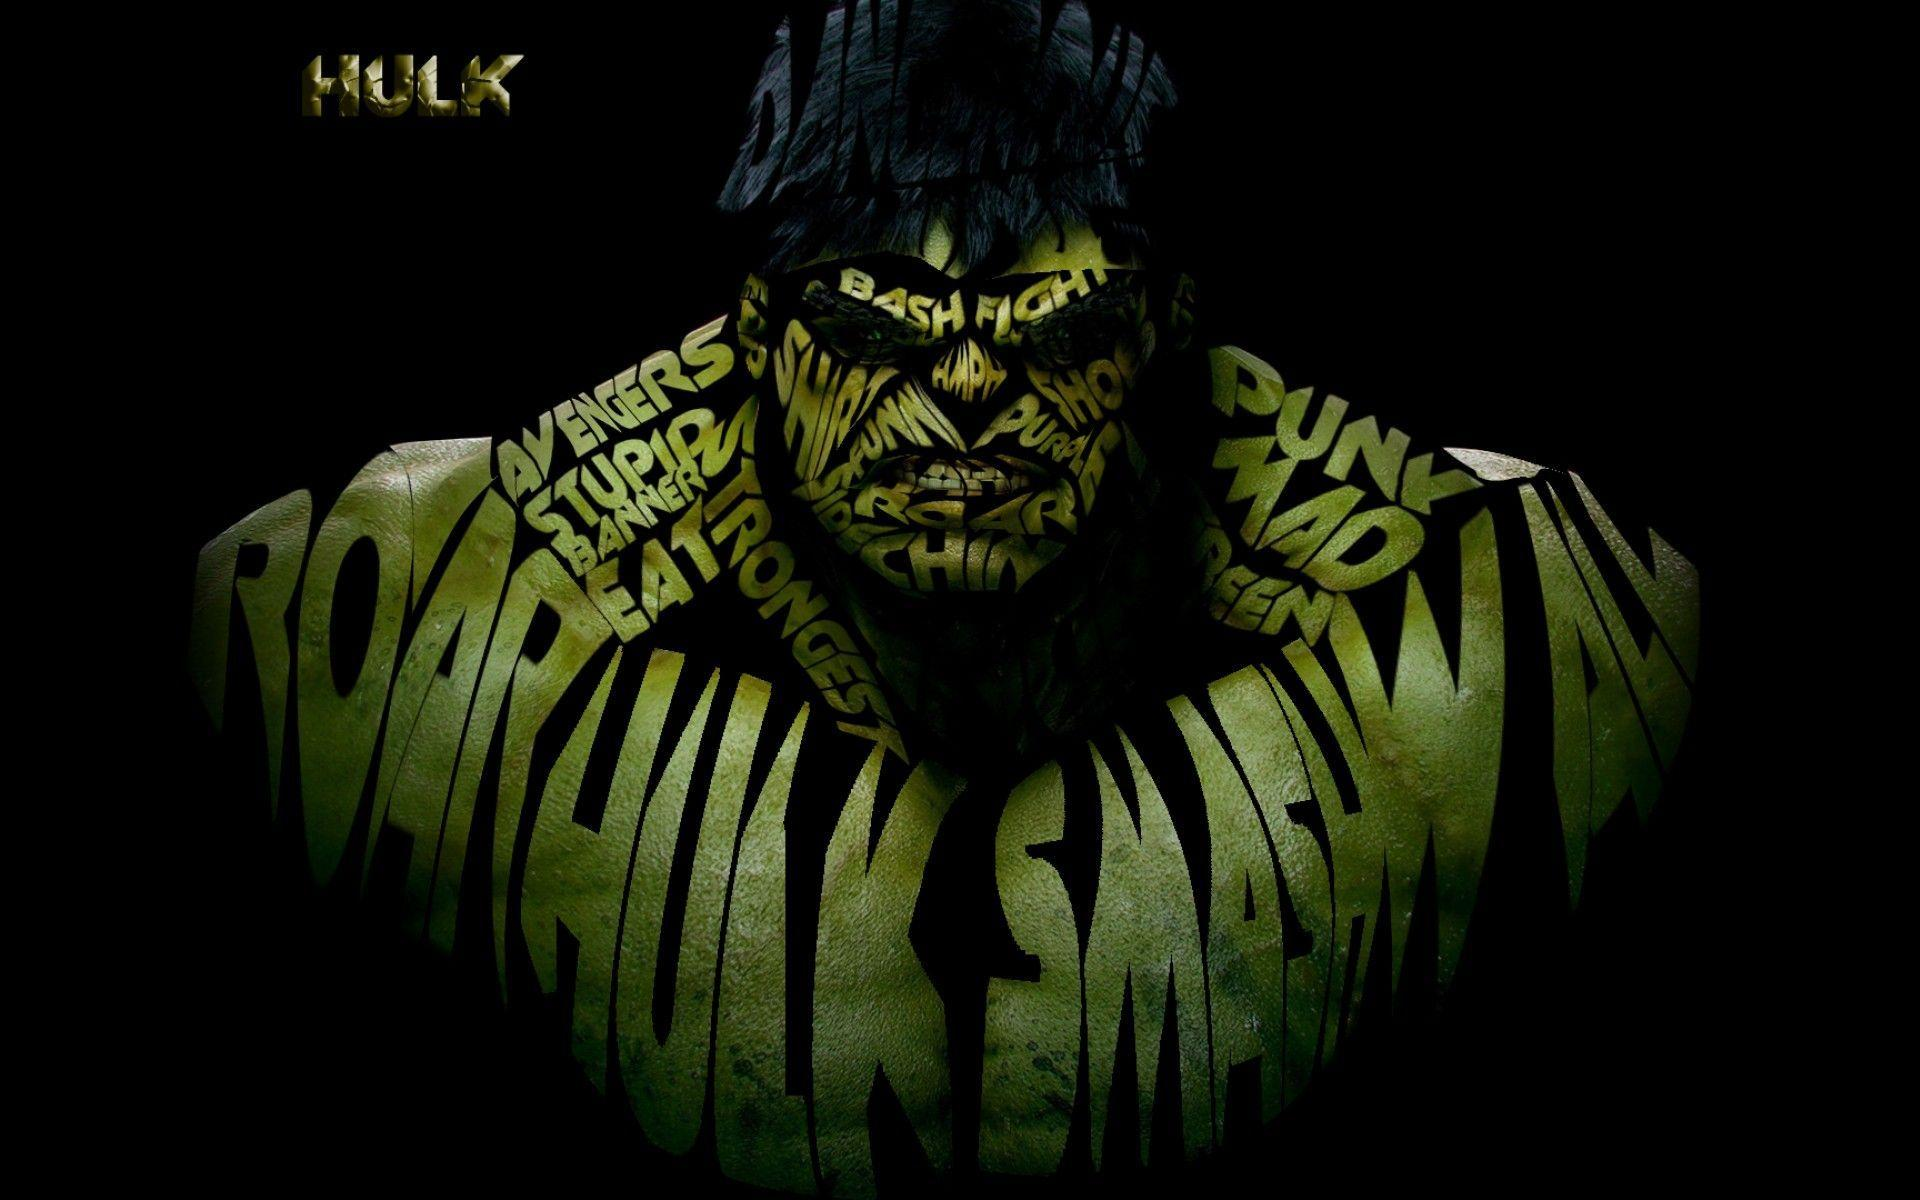 This is a photo of Monster Incredible Hulk Images